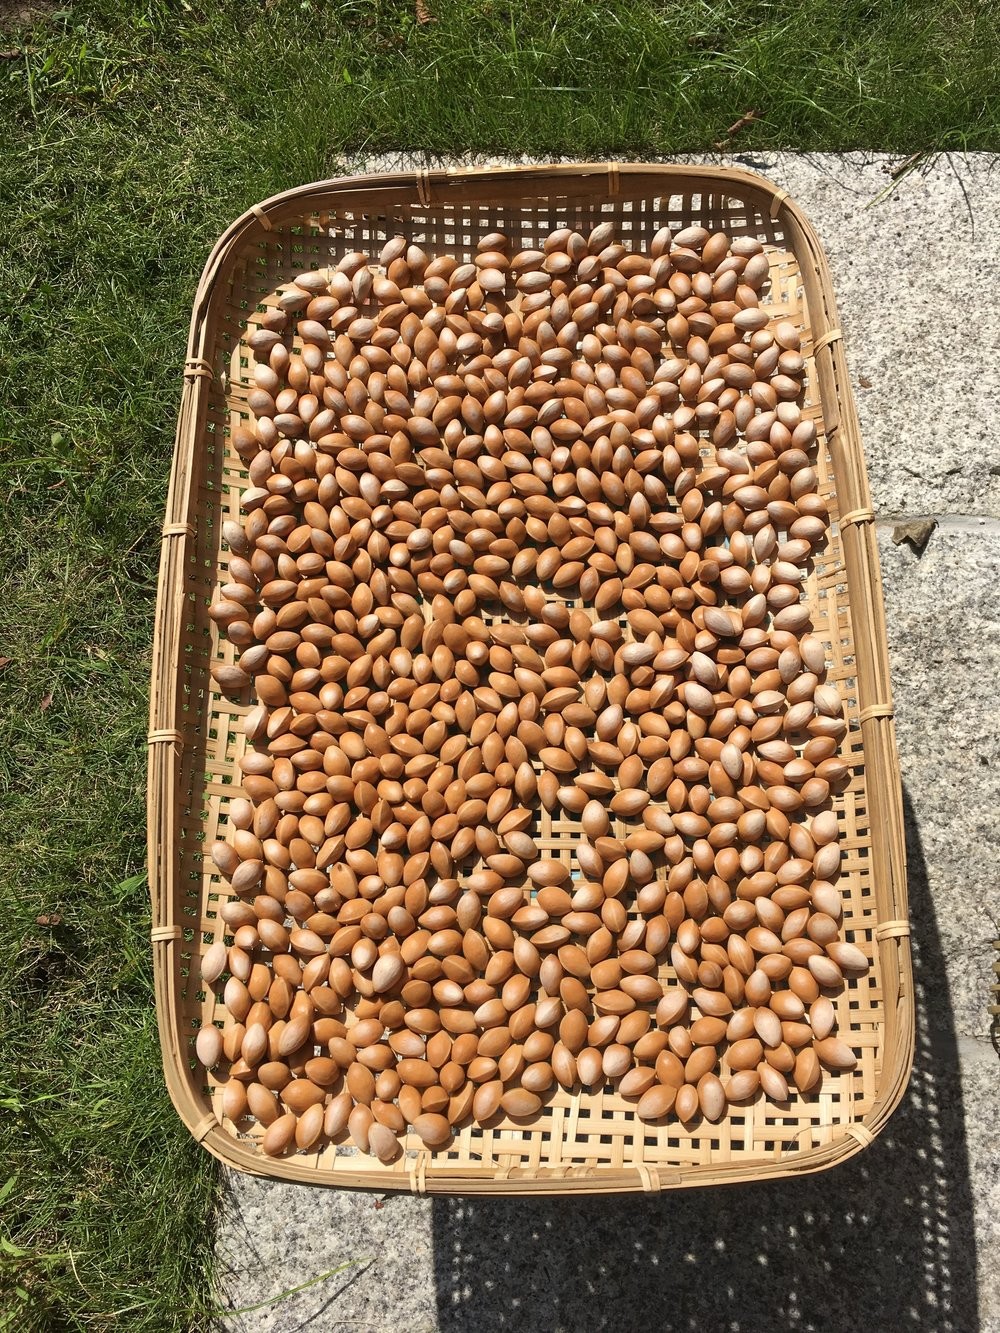 Gingko nuts drying in the sun